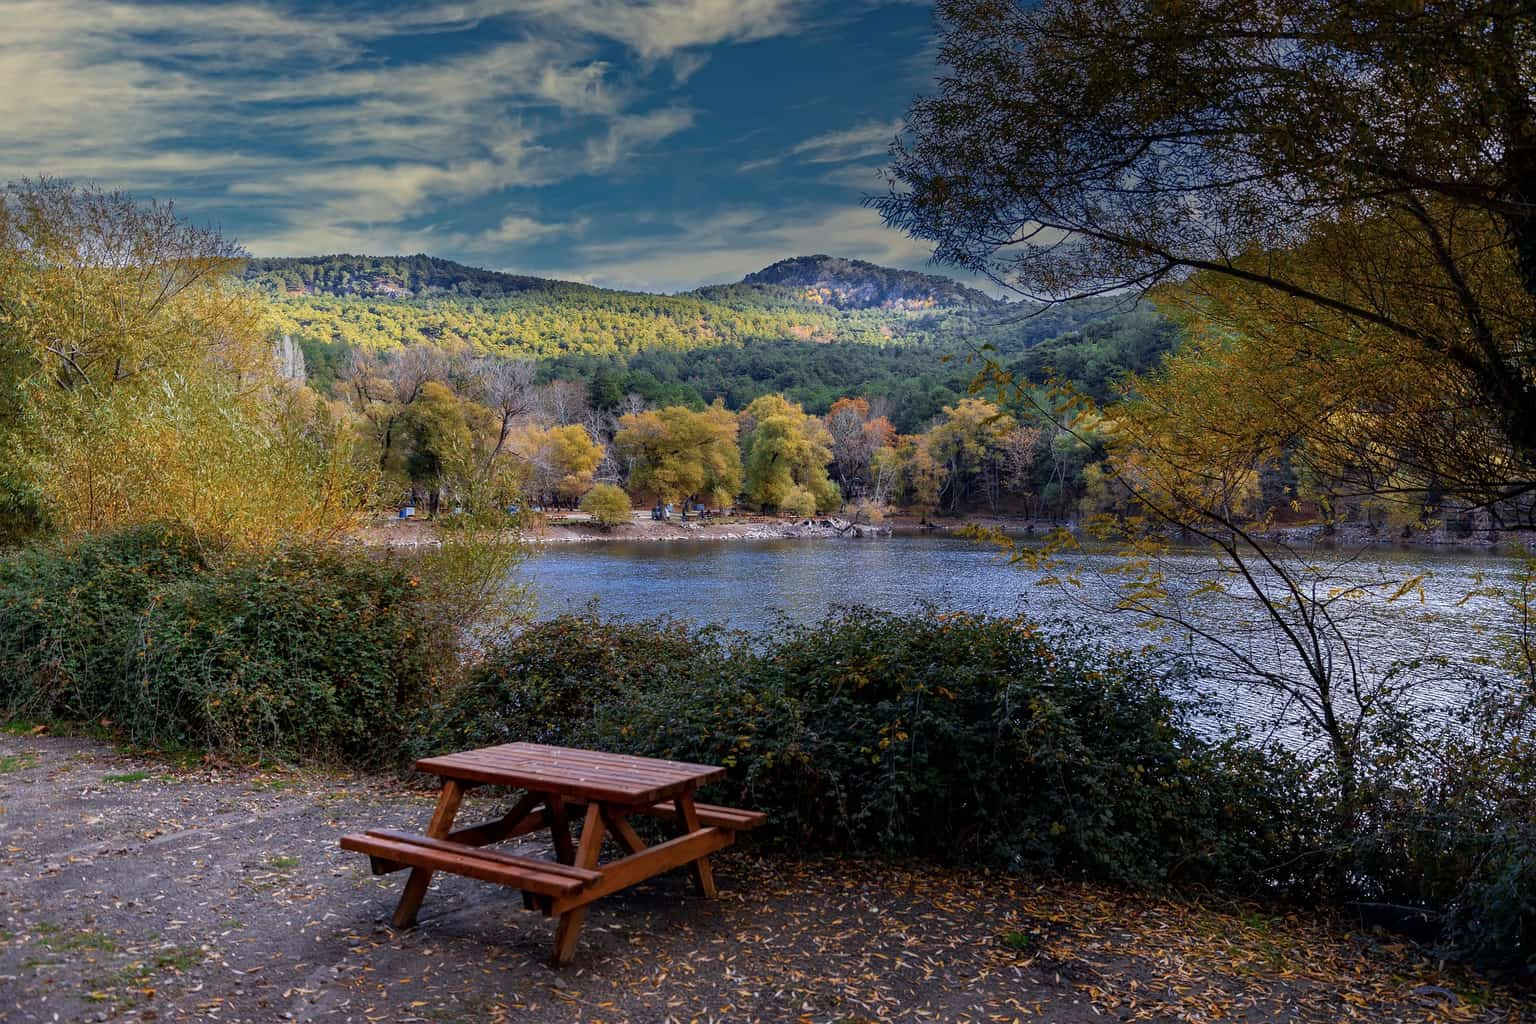 A picnic table beside a body of water